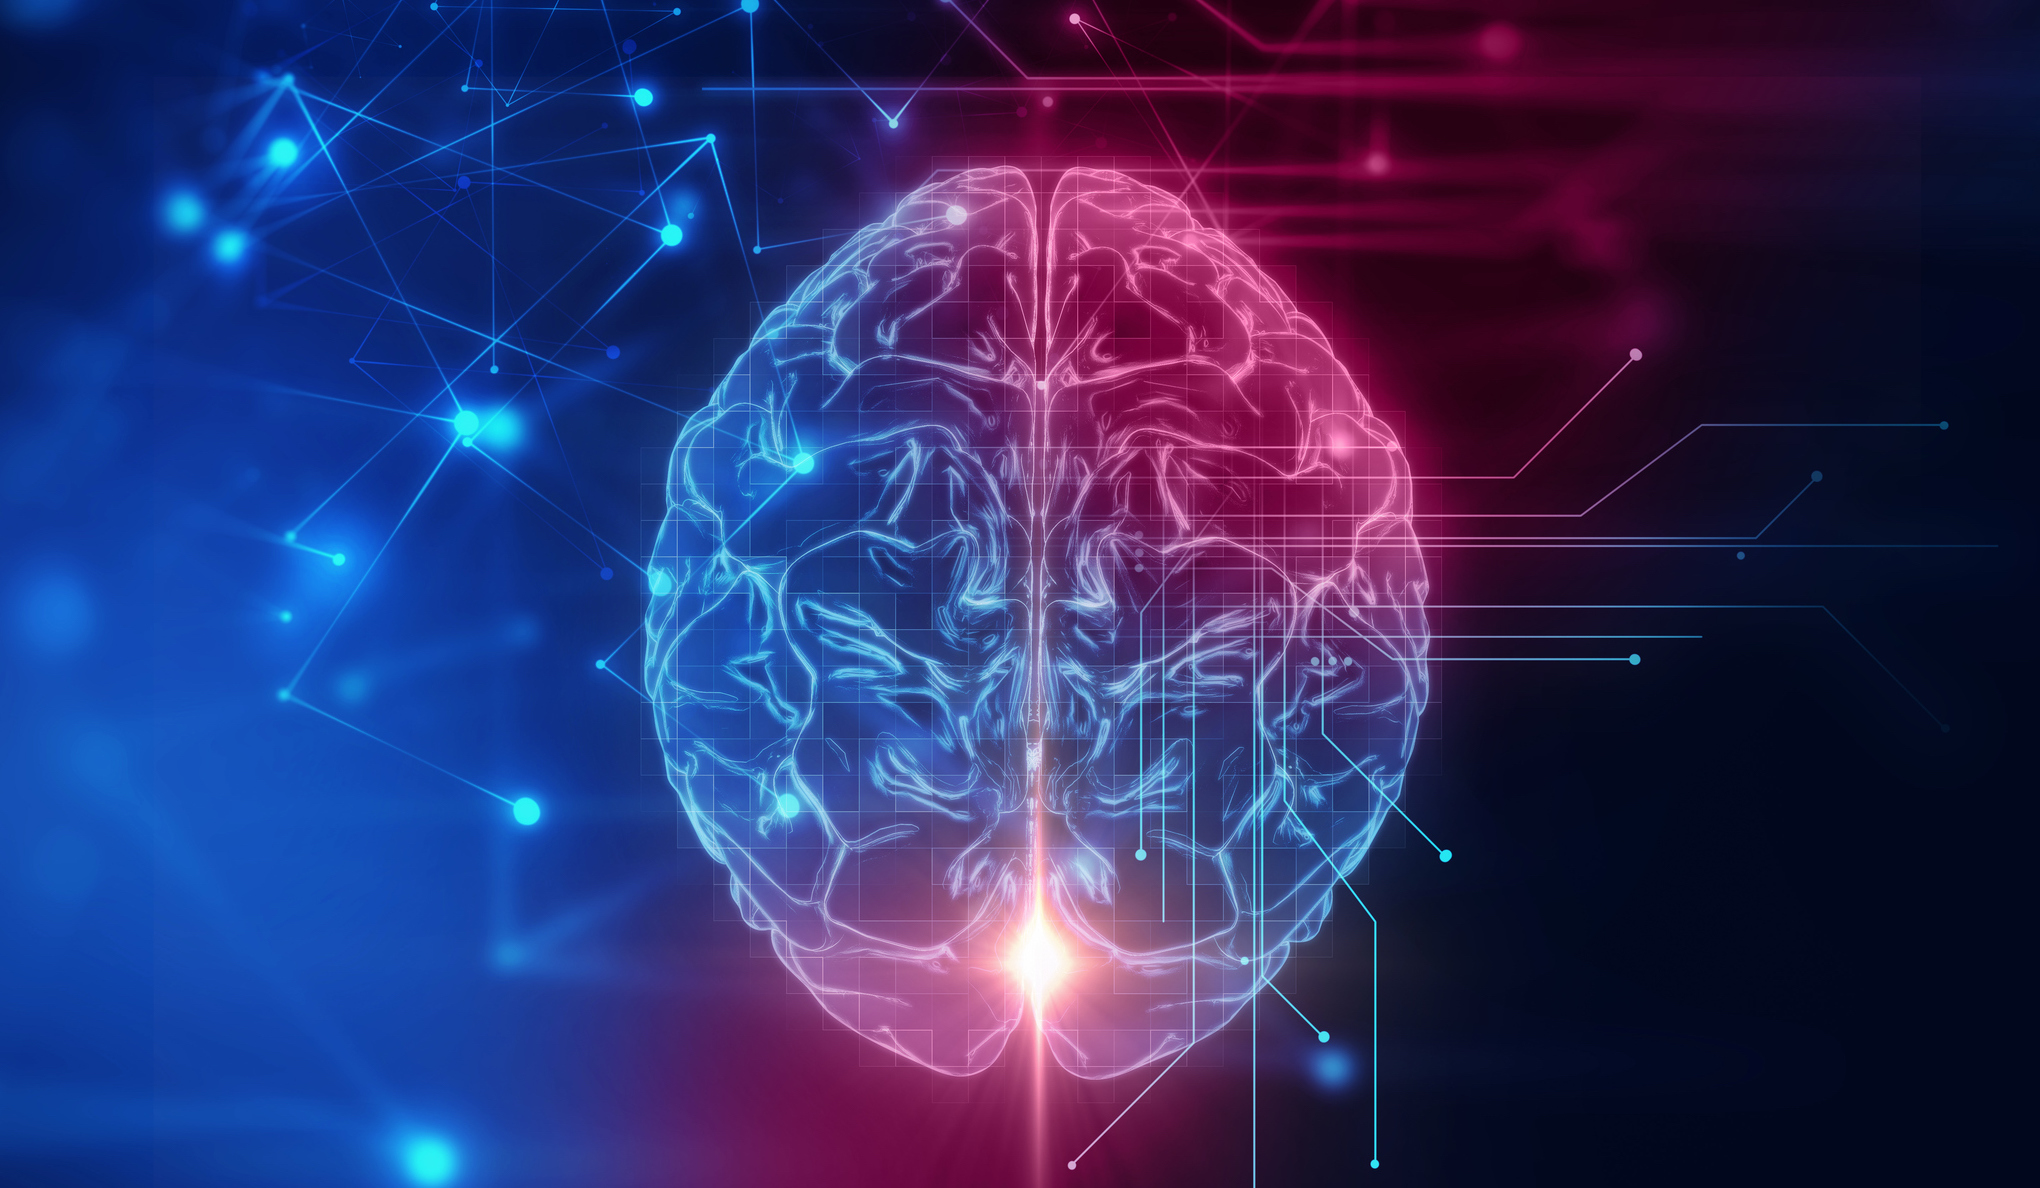 iStock 611992272 - 3d rendering of human  brain on technology background